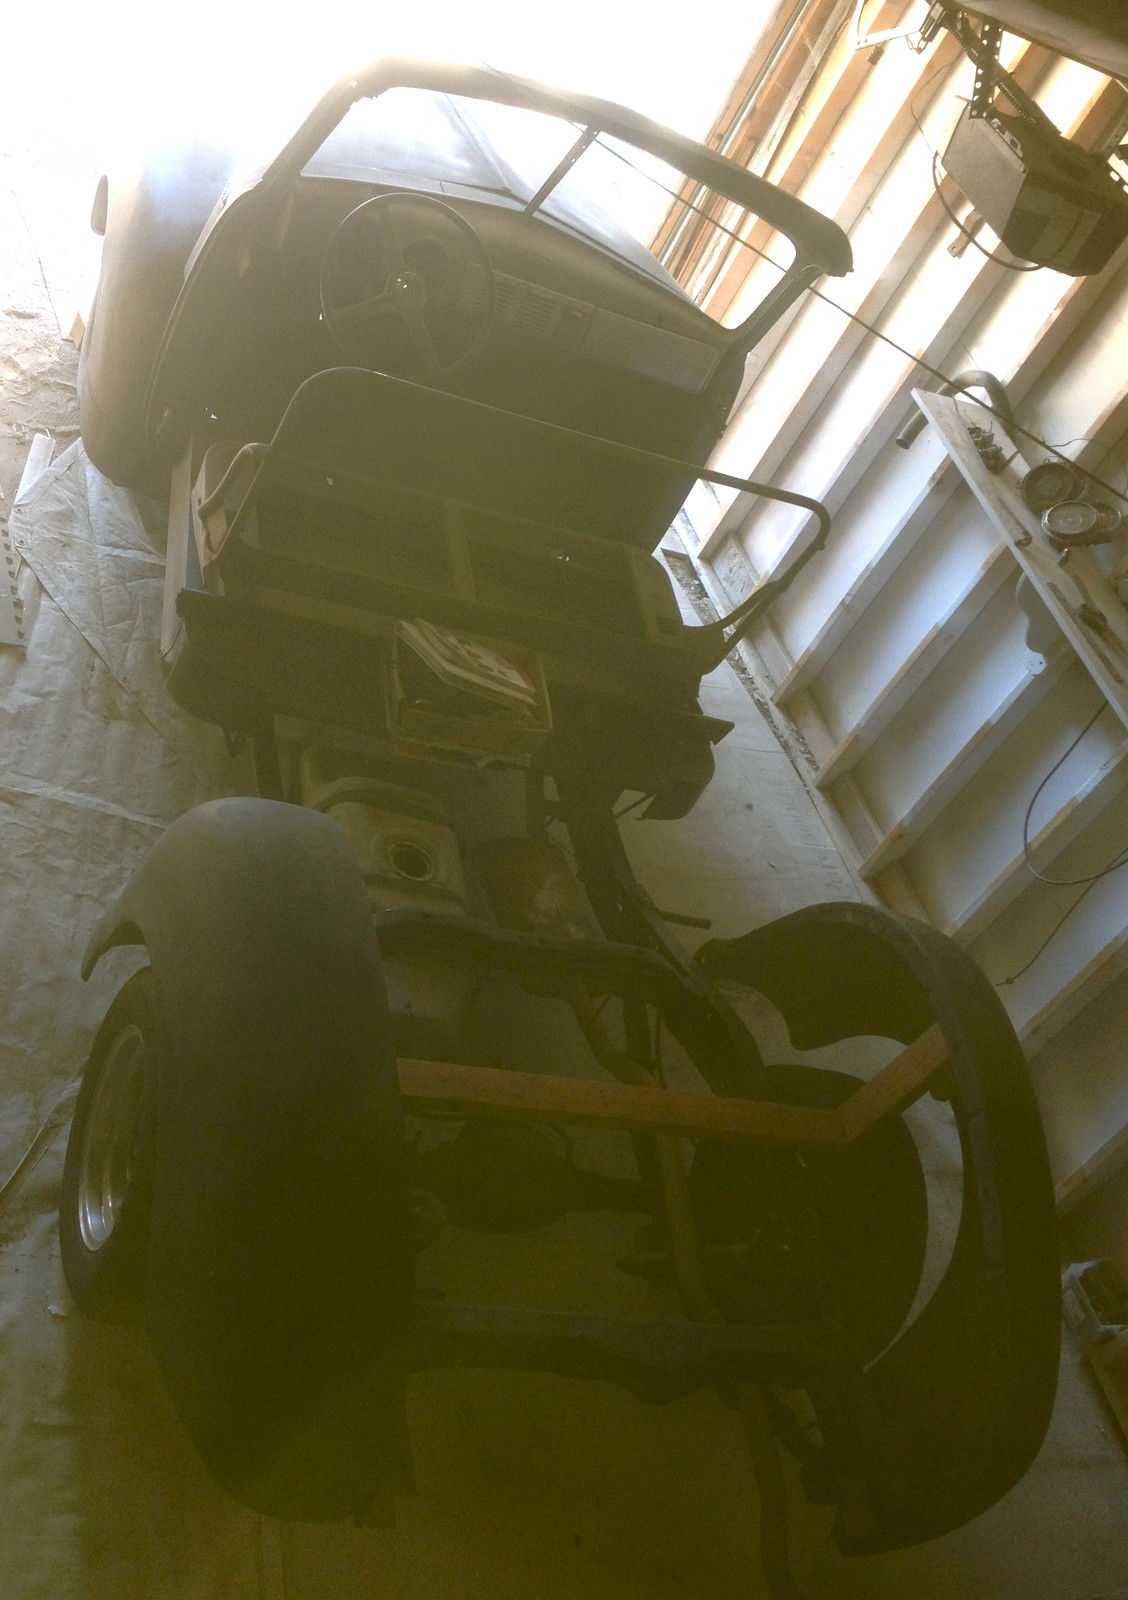 1951 Chevrolet Truck WOODY project on S10 frame 1947 1948